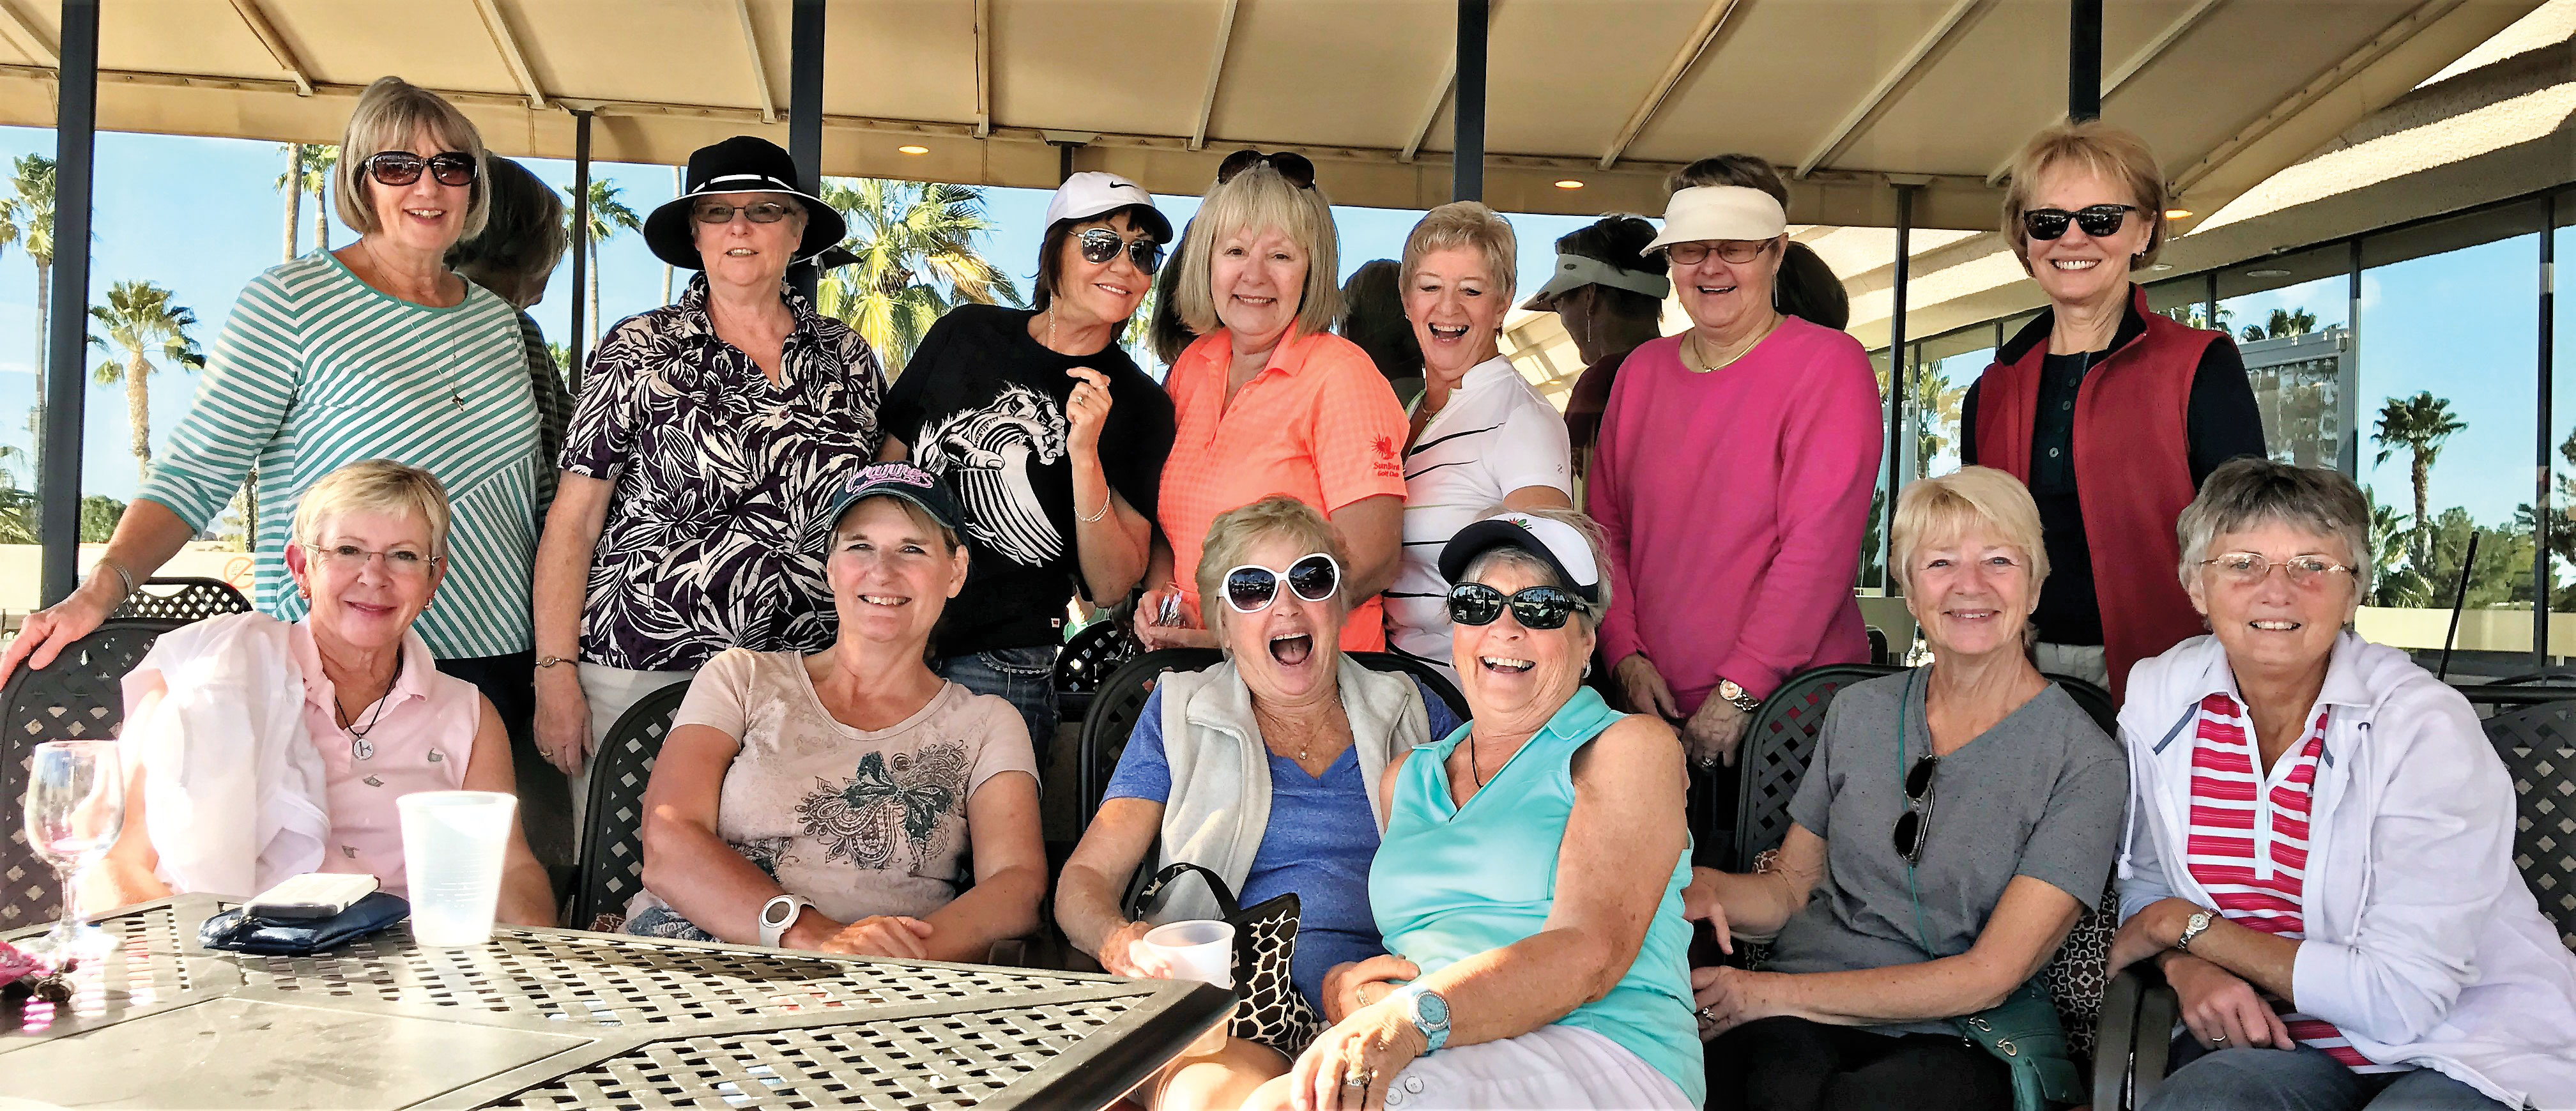 The Driving Divas group has been practicing for the tournament. Back row: Nicki Koller, Fran Pease, Marnie Copping, Judy Cockrell, Jean Pritchard, Marcia Sanders and Mary Bixby. Front row: Alice Whistler, Suzanne Popelka, Nancy DeBoer, Marki Wratten, Jan Sieth and Maggie Seideman.